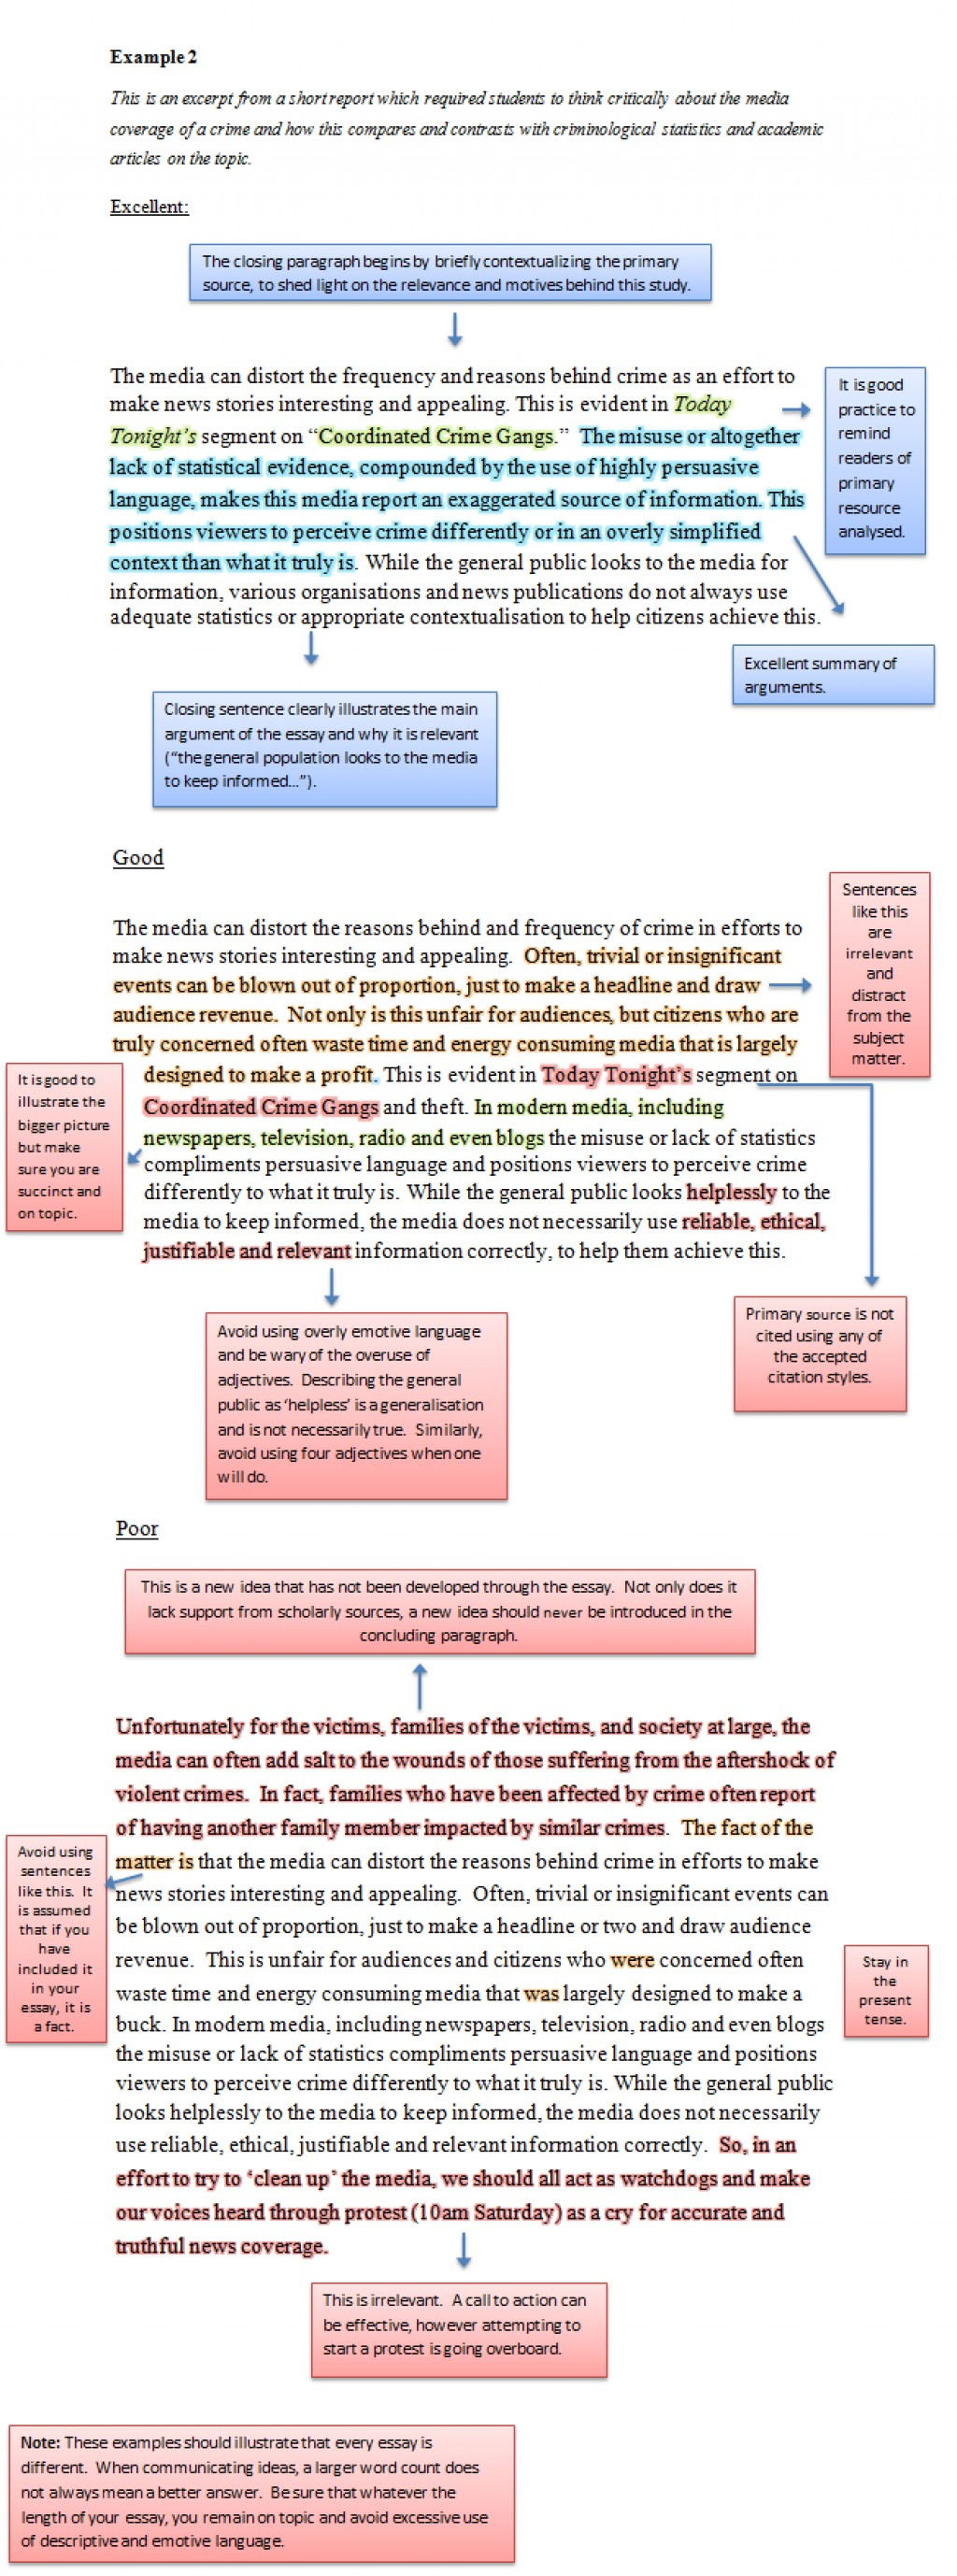 021 Essay Example Conclusion Png Of Good For Beautiful A An Compare And Contrast Examples Paragraph Argumentative Large